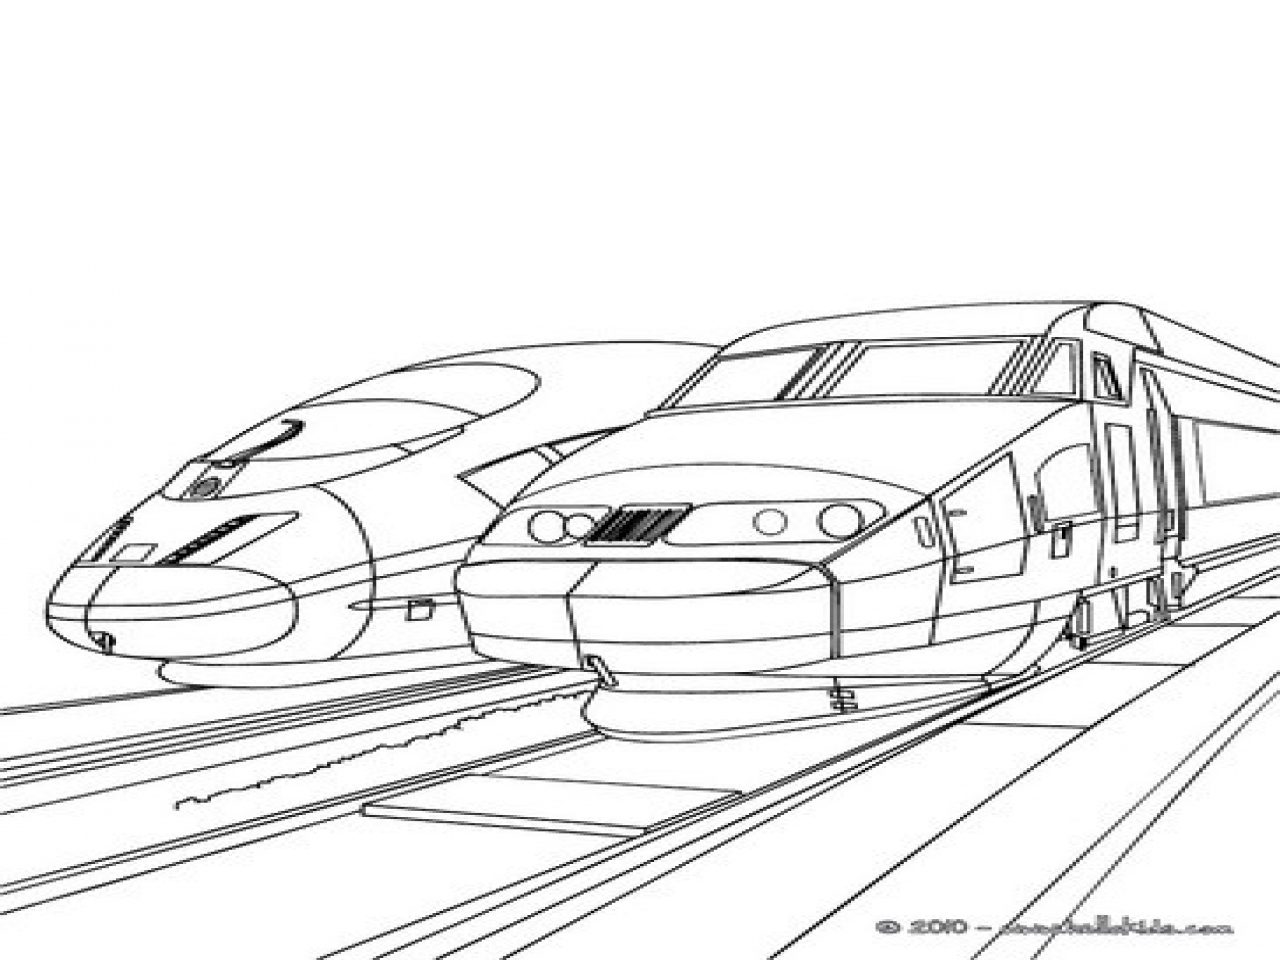 1280x960 Train Station Coloring Pages High Speed Trains Sideline Parked